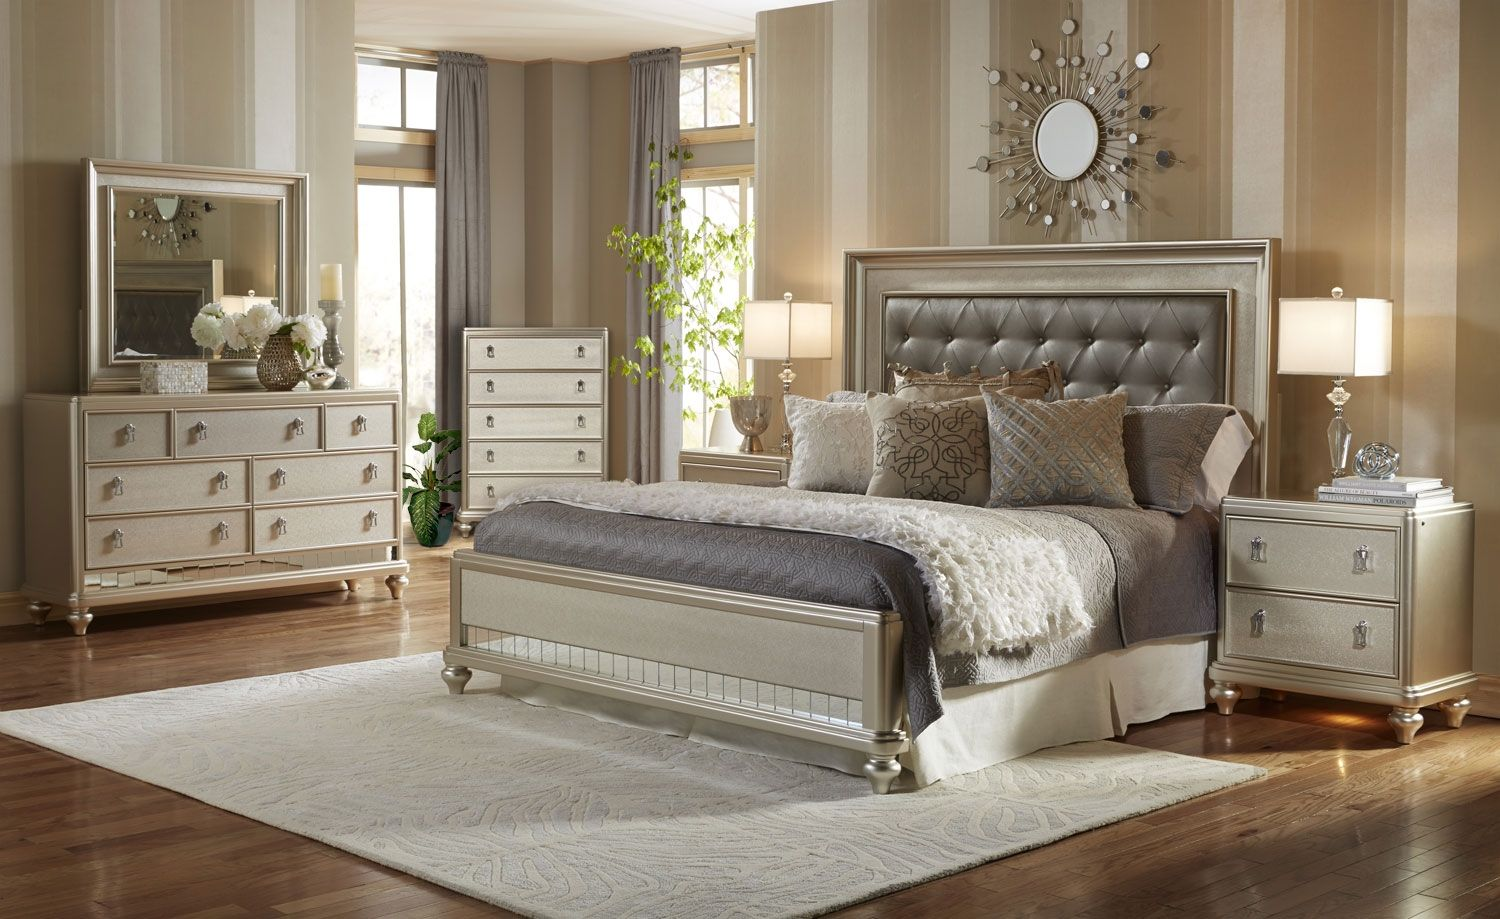 Diva 8-Piece Queen Bedroom Package | Interiors - Bedrooms ...